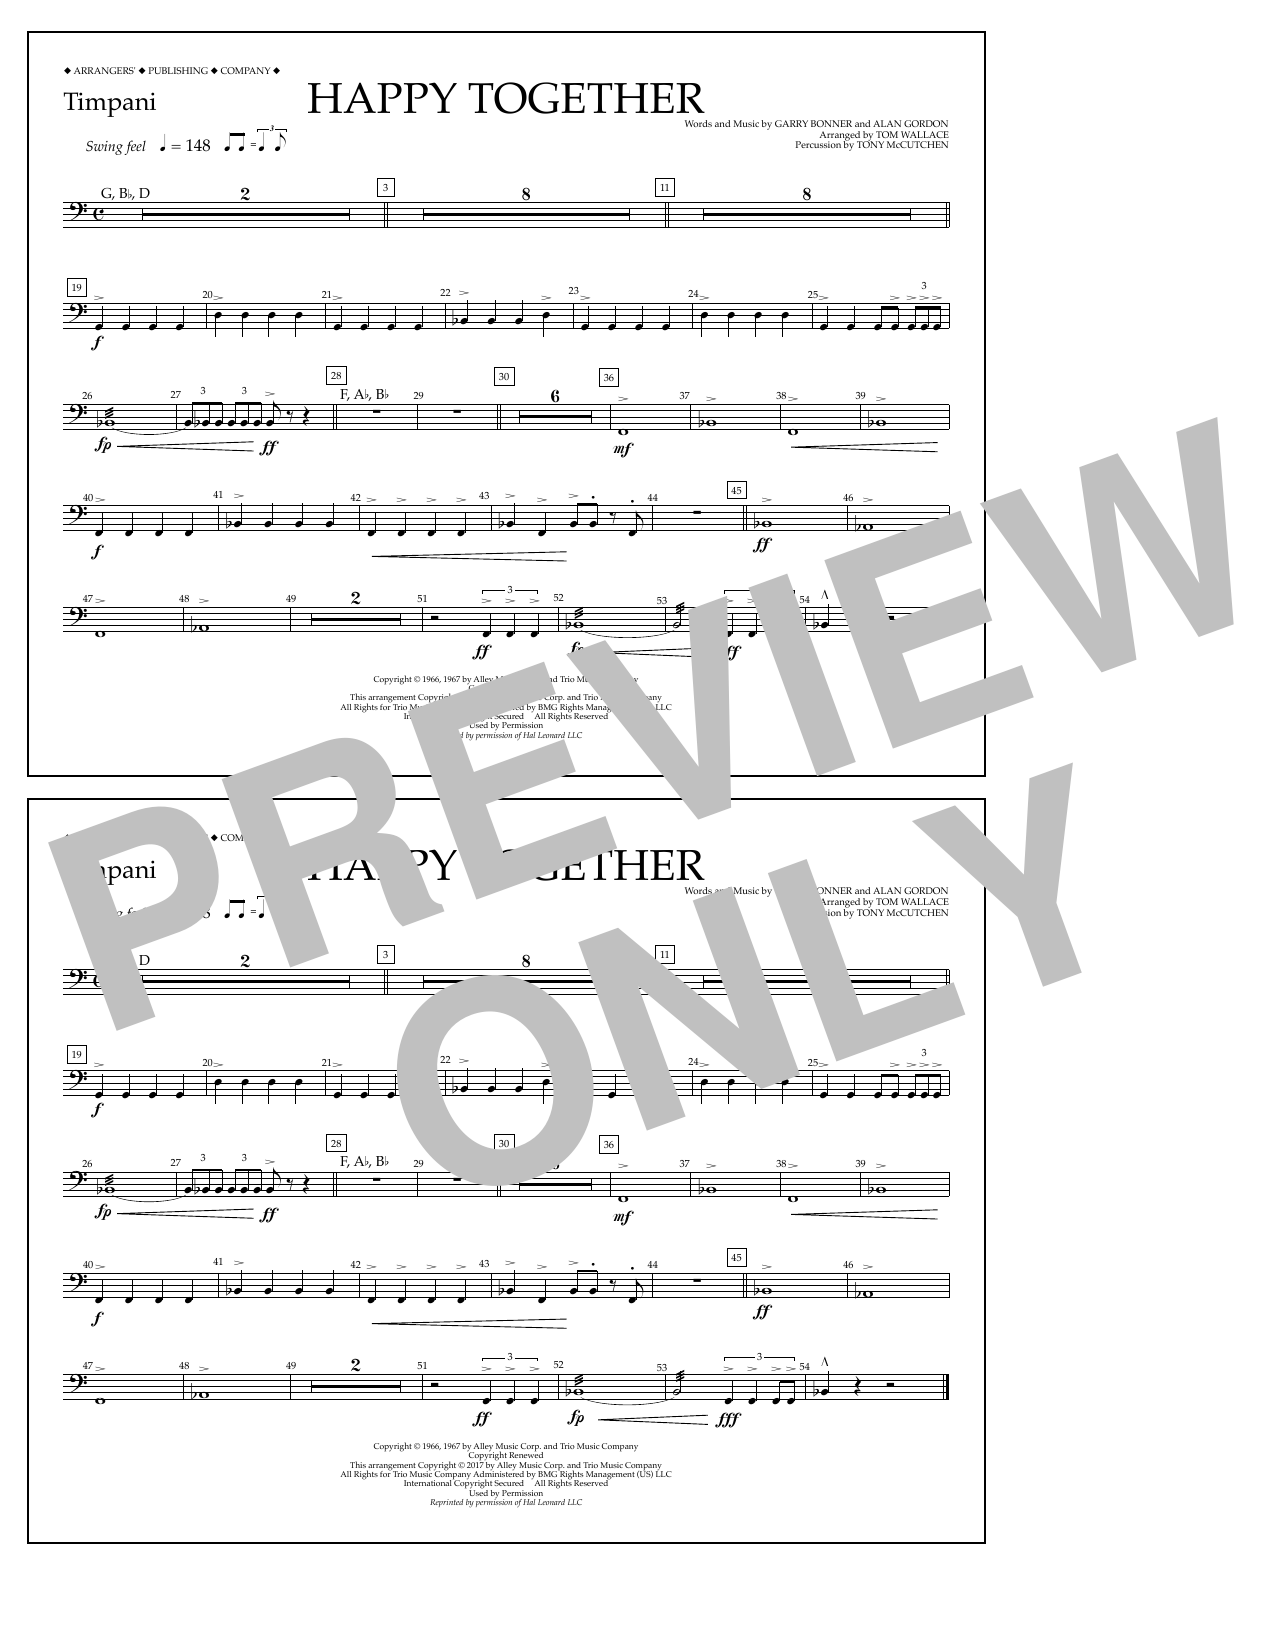 Happy Together - Timpani Sheet Music